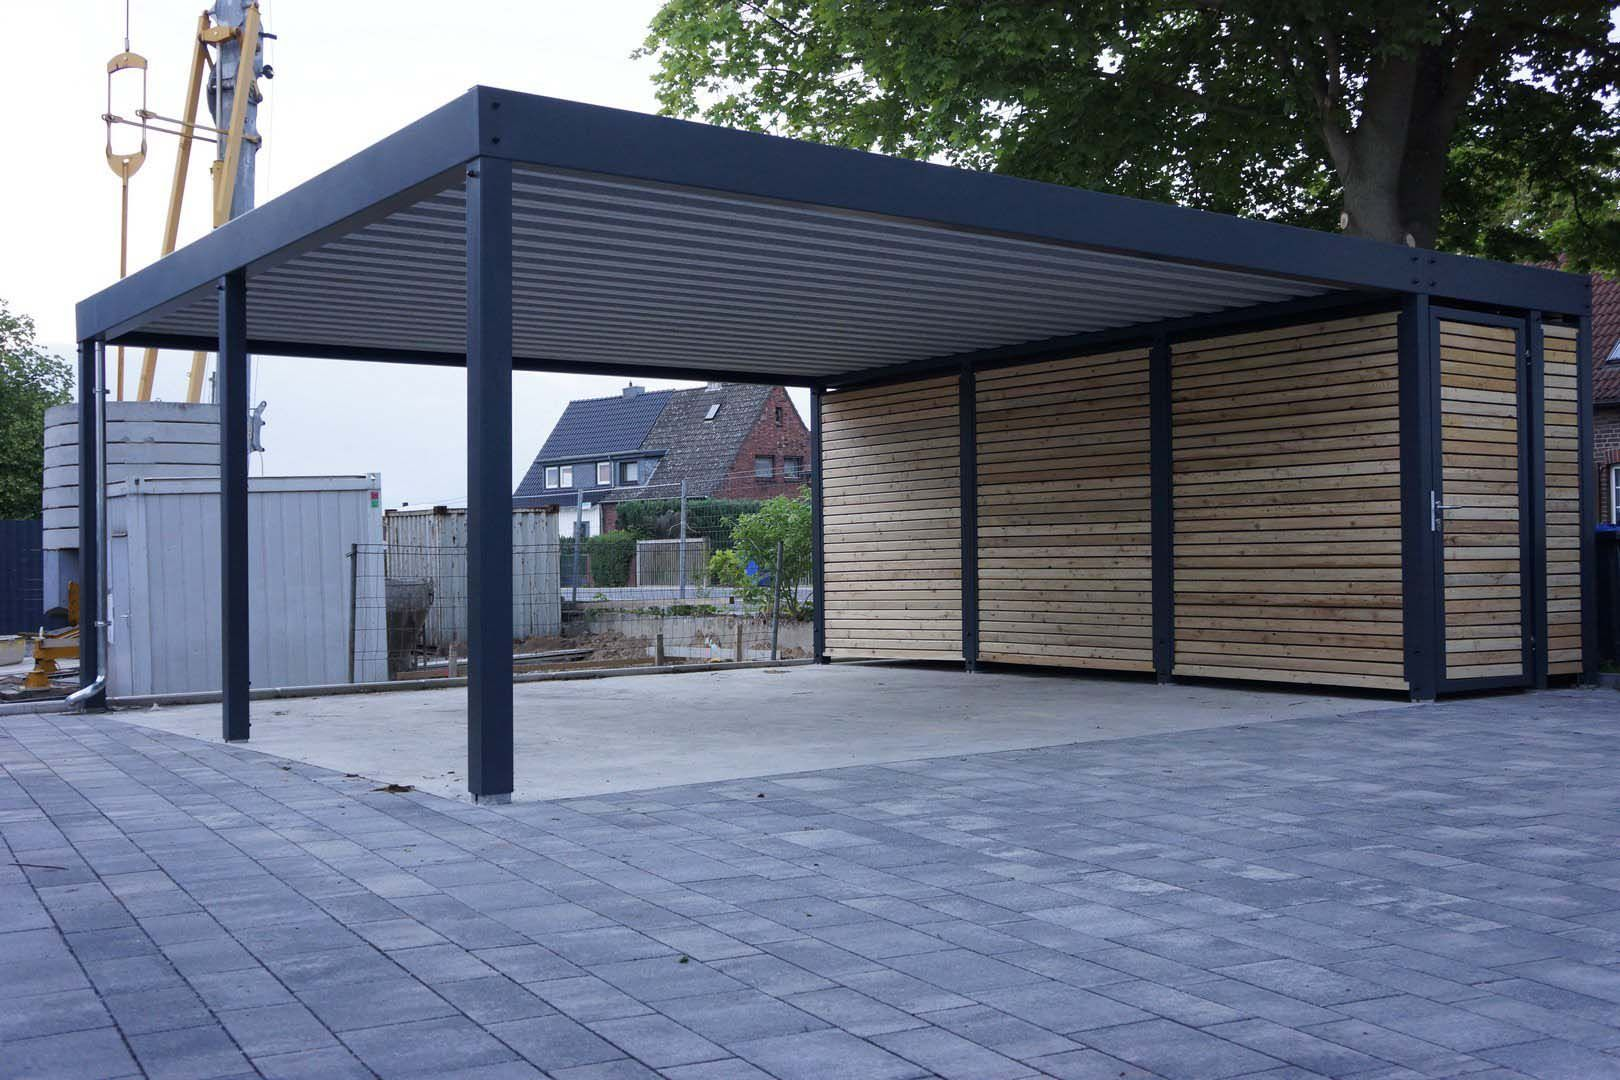 Design metall carport aus holz stahl mit abstellraum for Carport blueprints